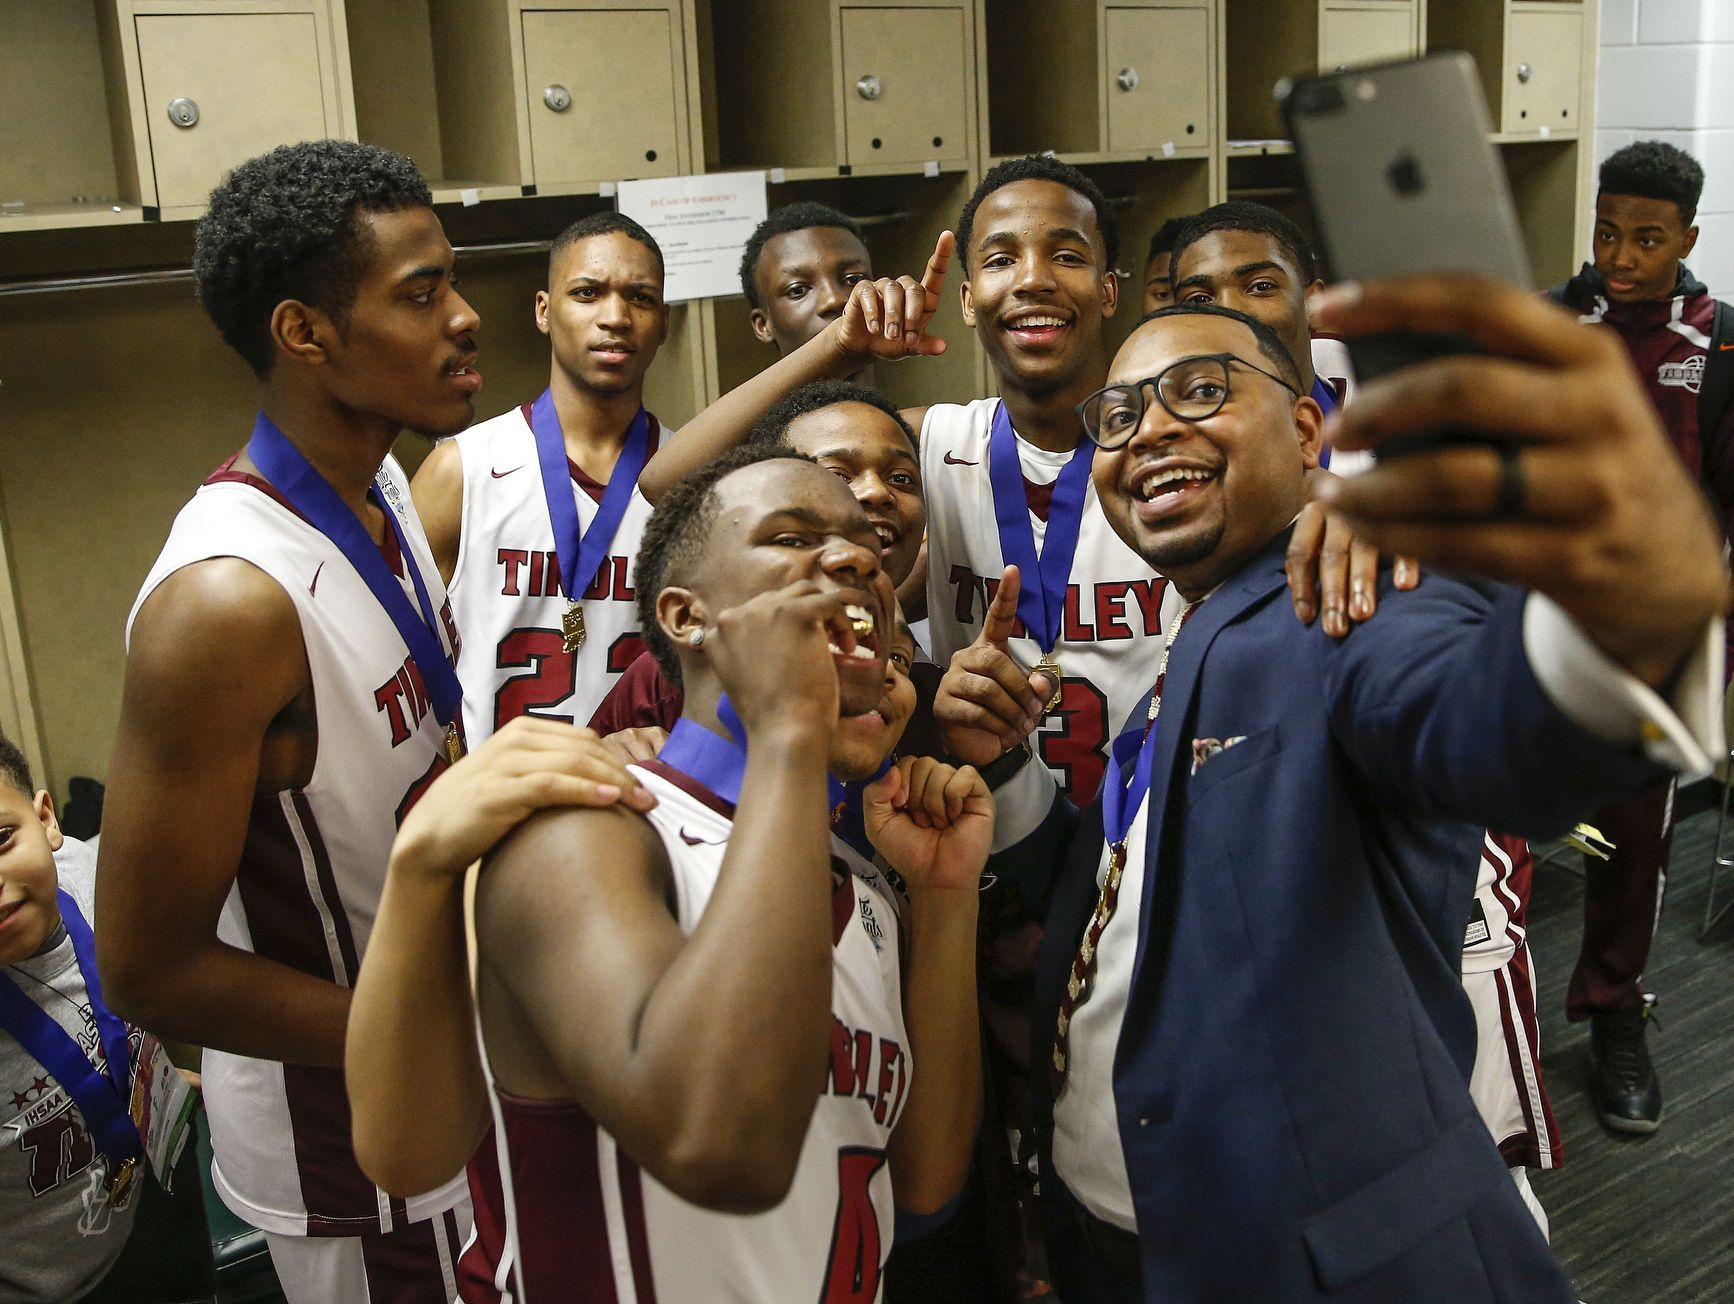 The Tindley Tigers take a selfie in the locker room after winning the IHSAA Class A state championship trophy game 51-49 over the Lafayette Central Catholic Knights at Bankers Life Fieldhouse in Indianapolis on Saturday, March 25, 2017.